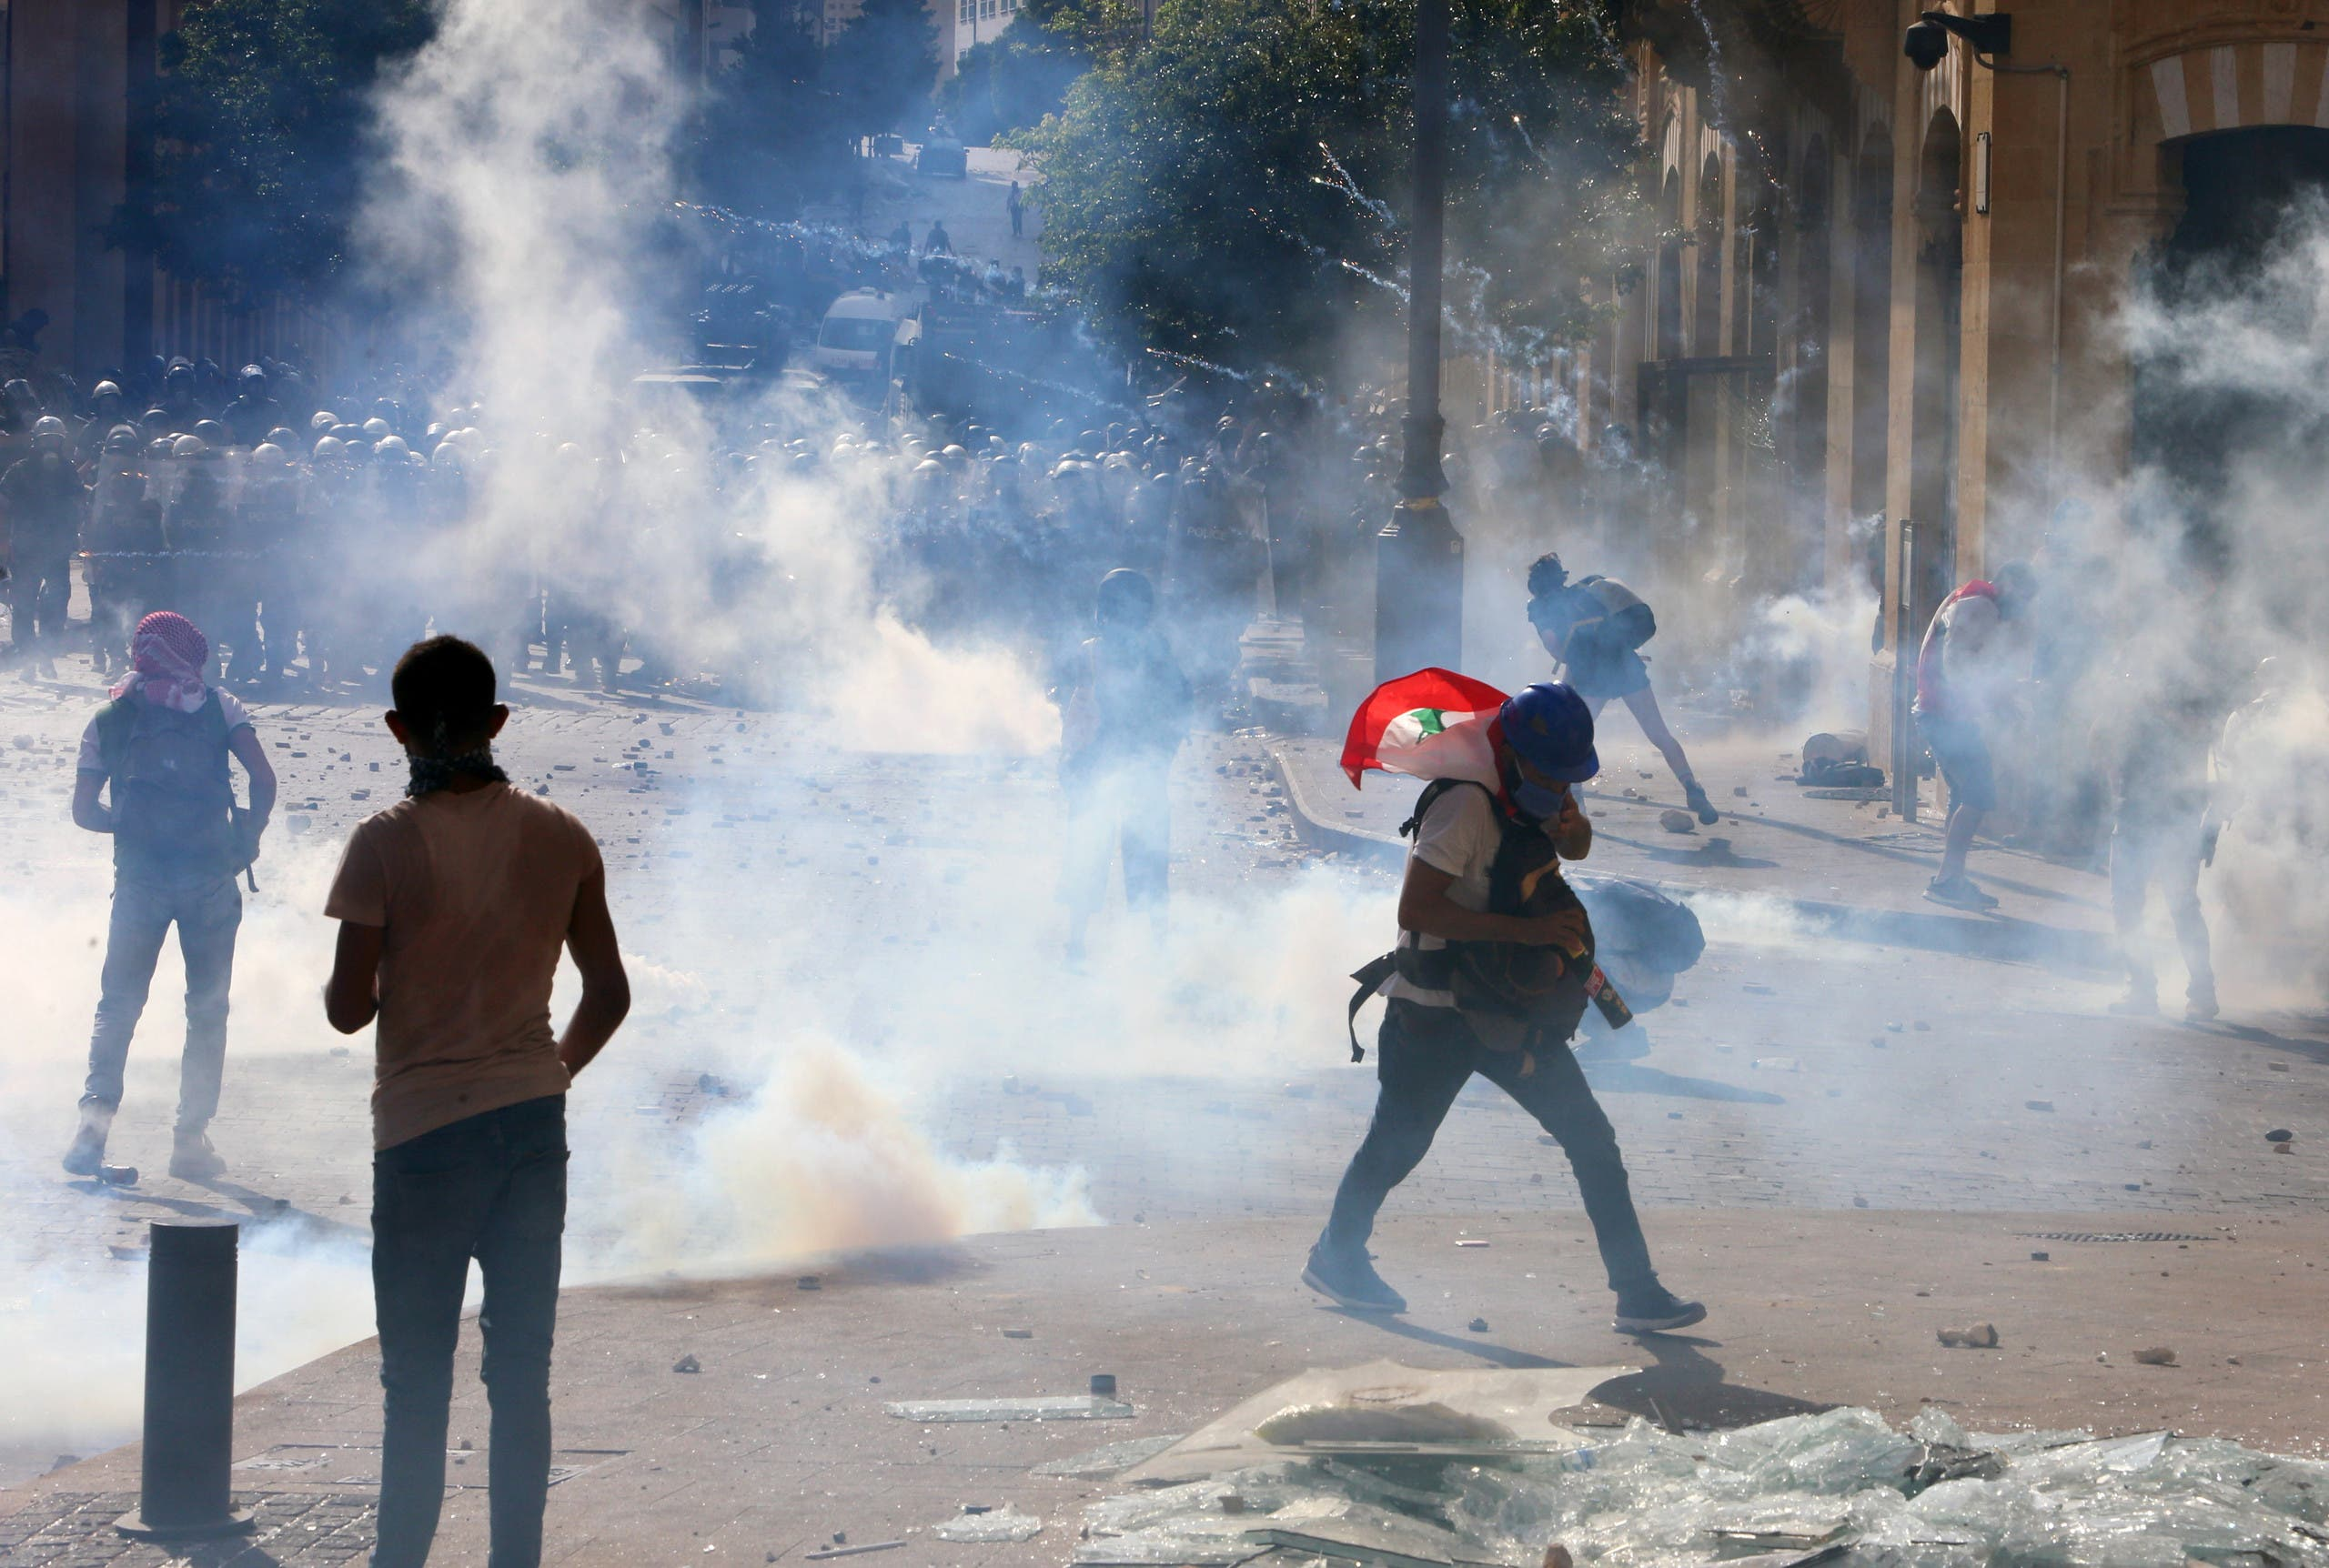 Demonstrators take part in a protest amid a cloud of tear gas fired by police, following Tuesday's blast, in Beirut, Lebanon August 8, 2020. (Reuters)